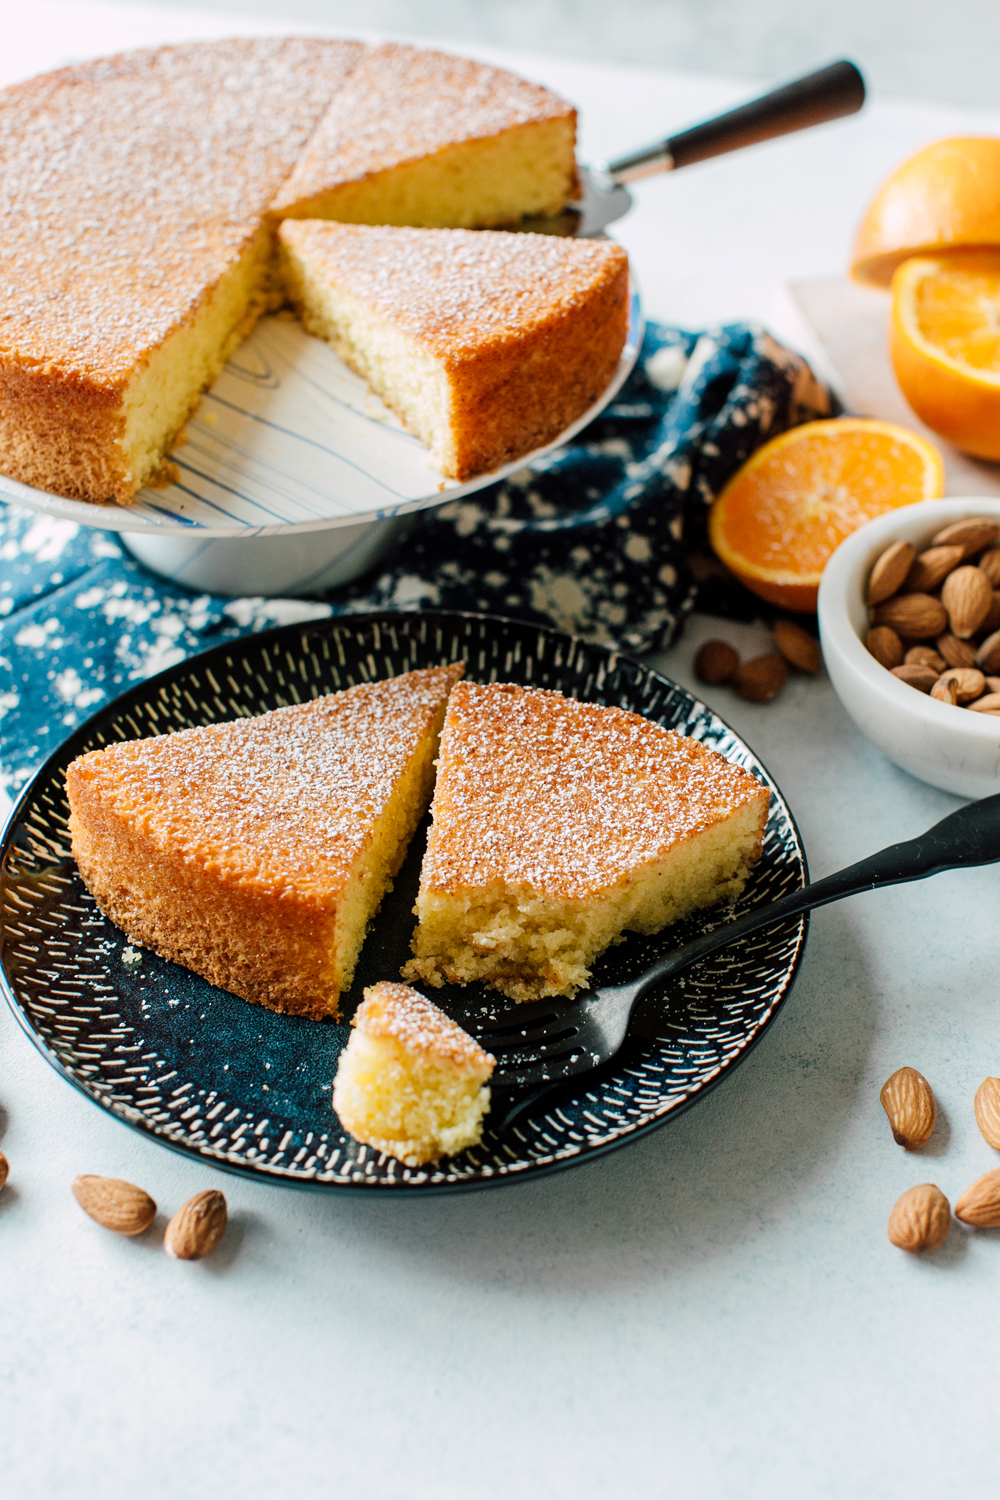 009-bellingham-food-photographer-katheryn-moran-orange-almond-cake.jpg